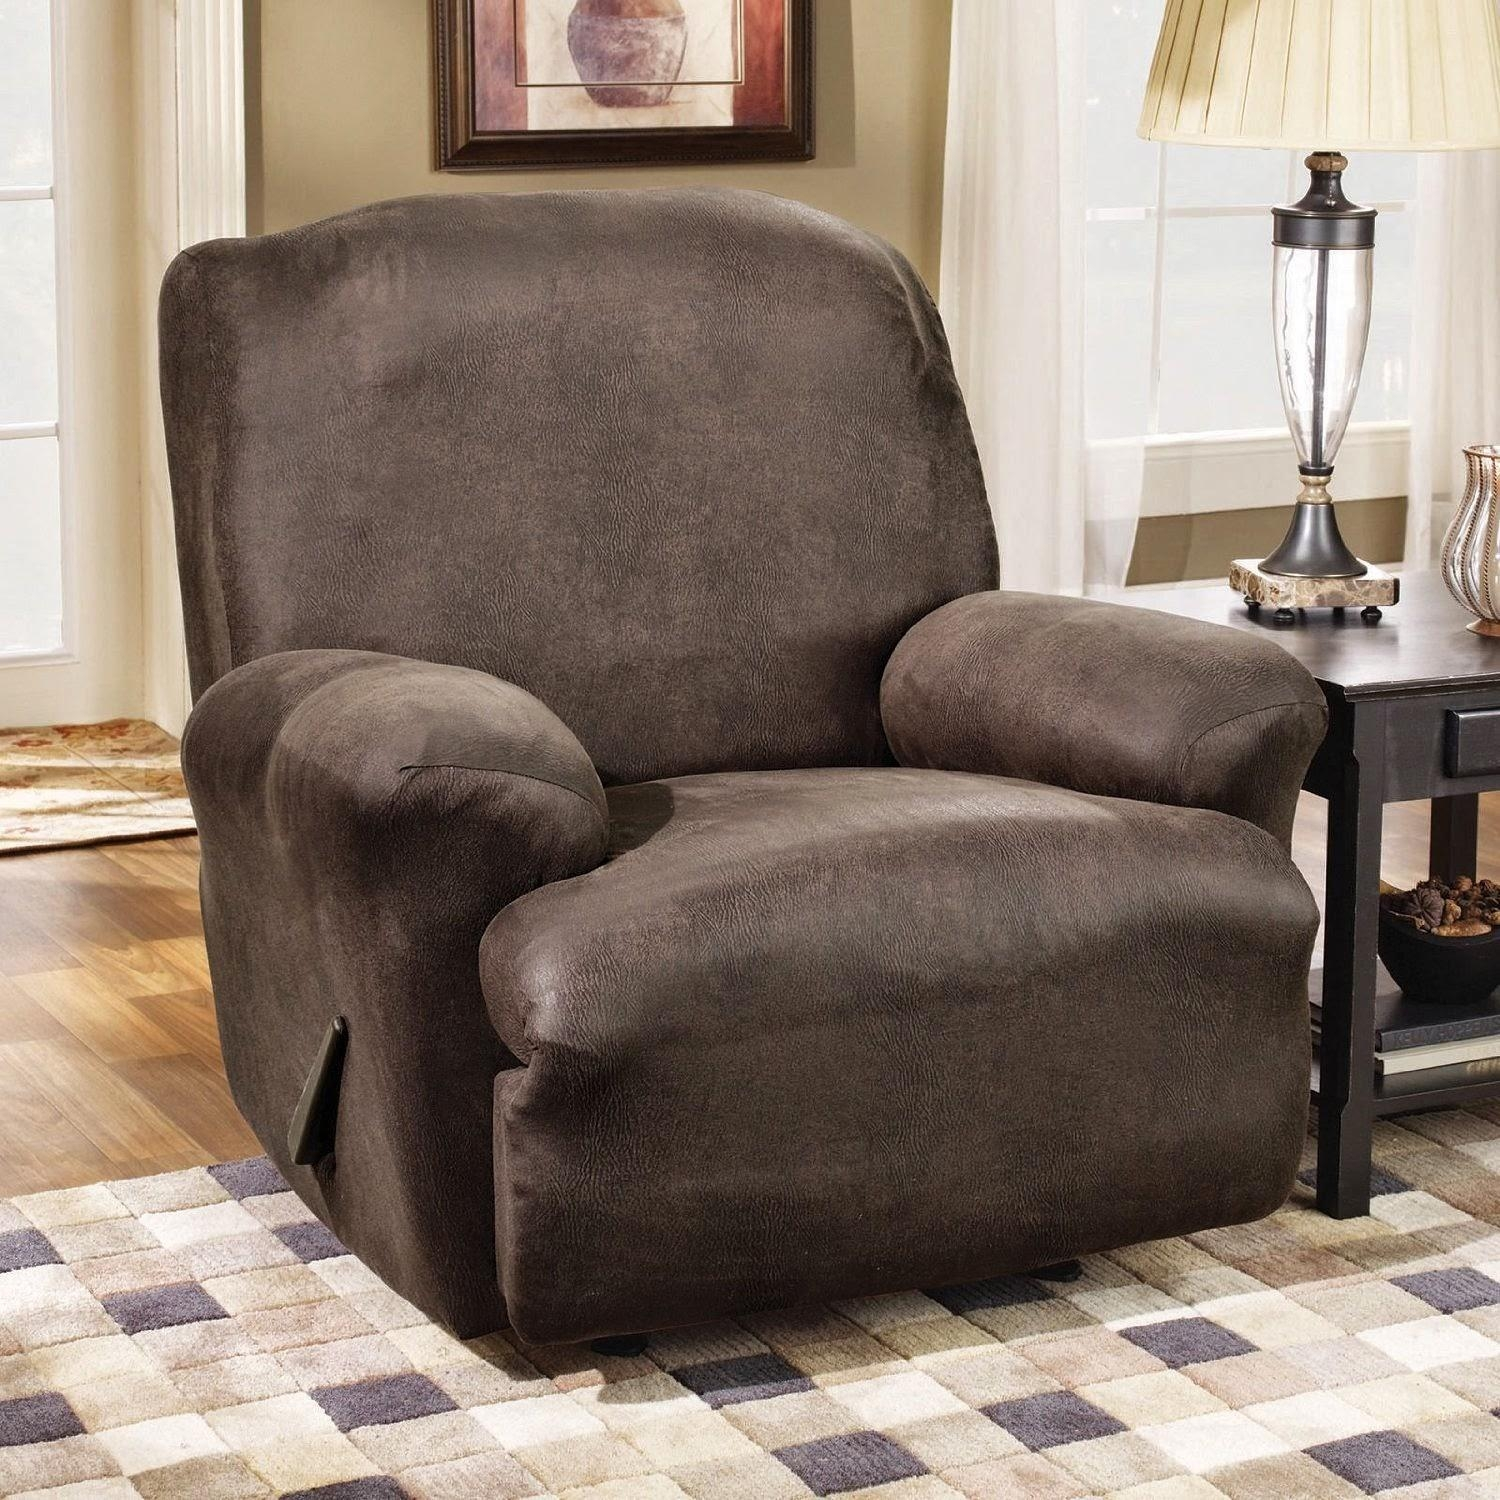 Couch Slipcovers For Reclining Sofa – Laura Williams With Regard To Slipcover For Recliner Sofas (Image 4 of 20)